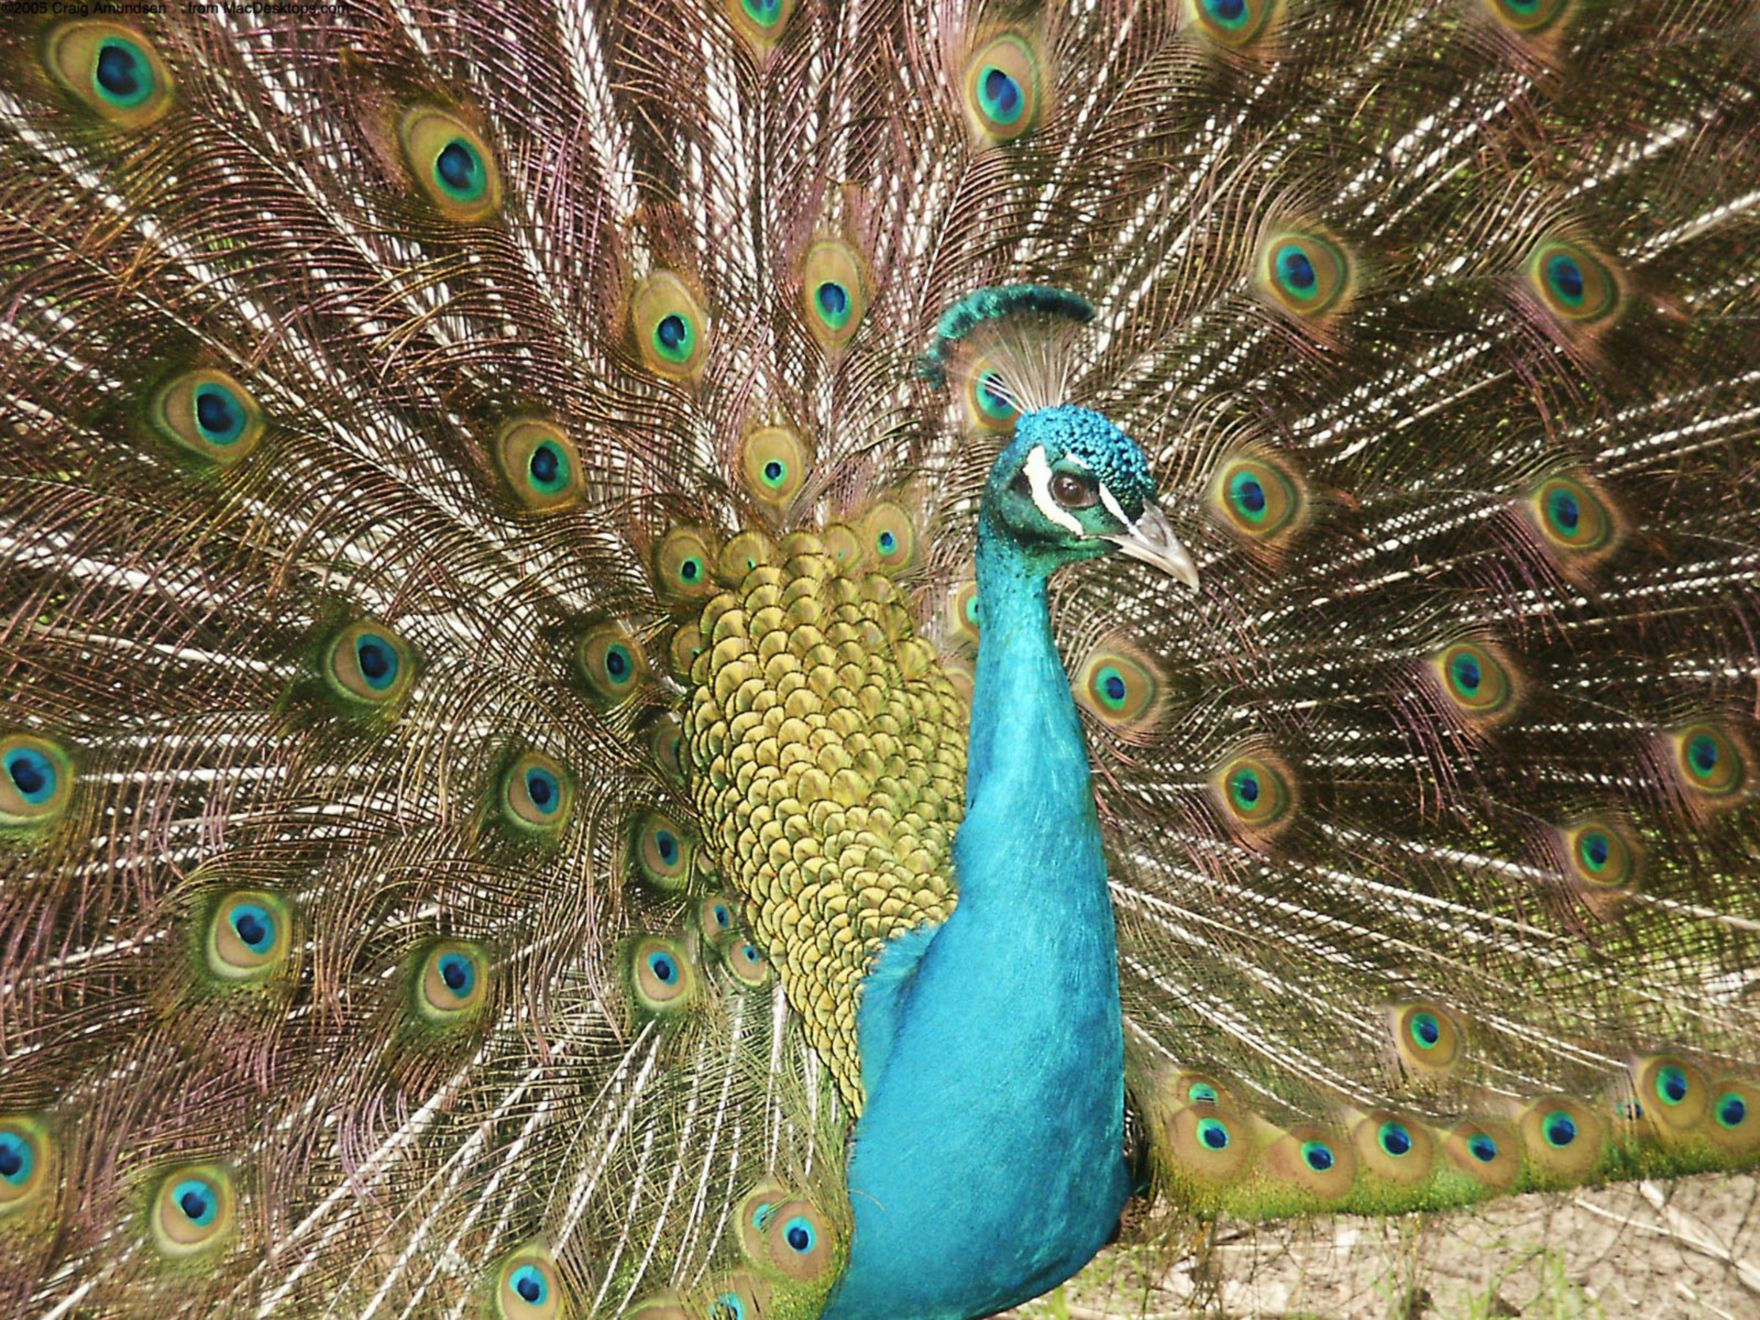 Download free HD A Peacock Normal Wallpaper, image